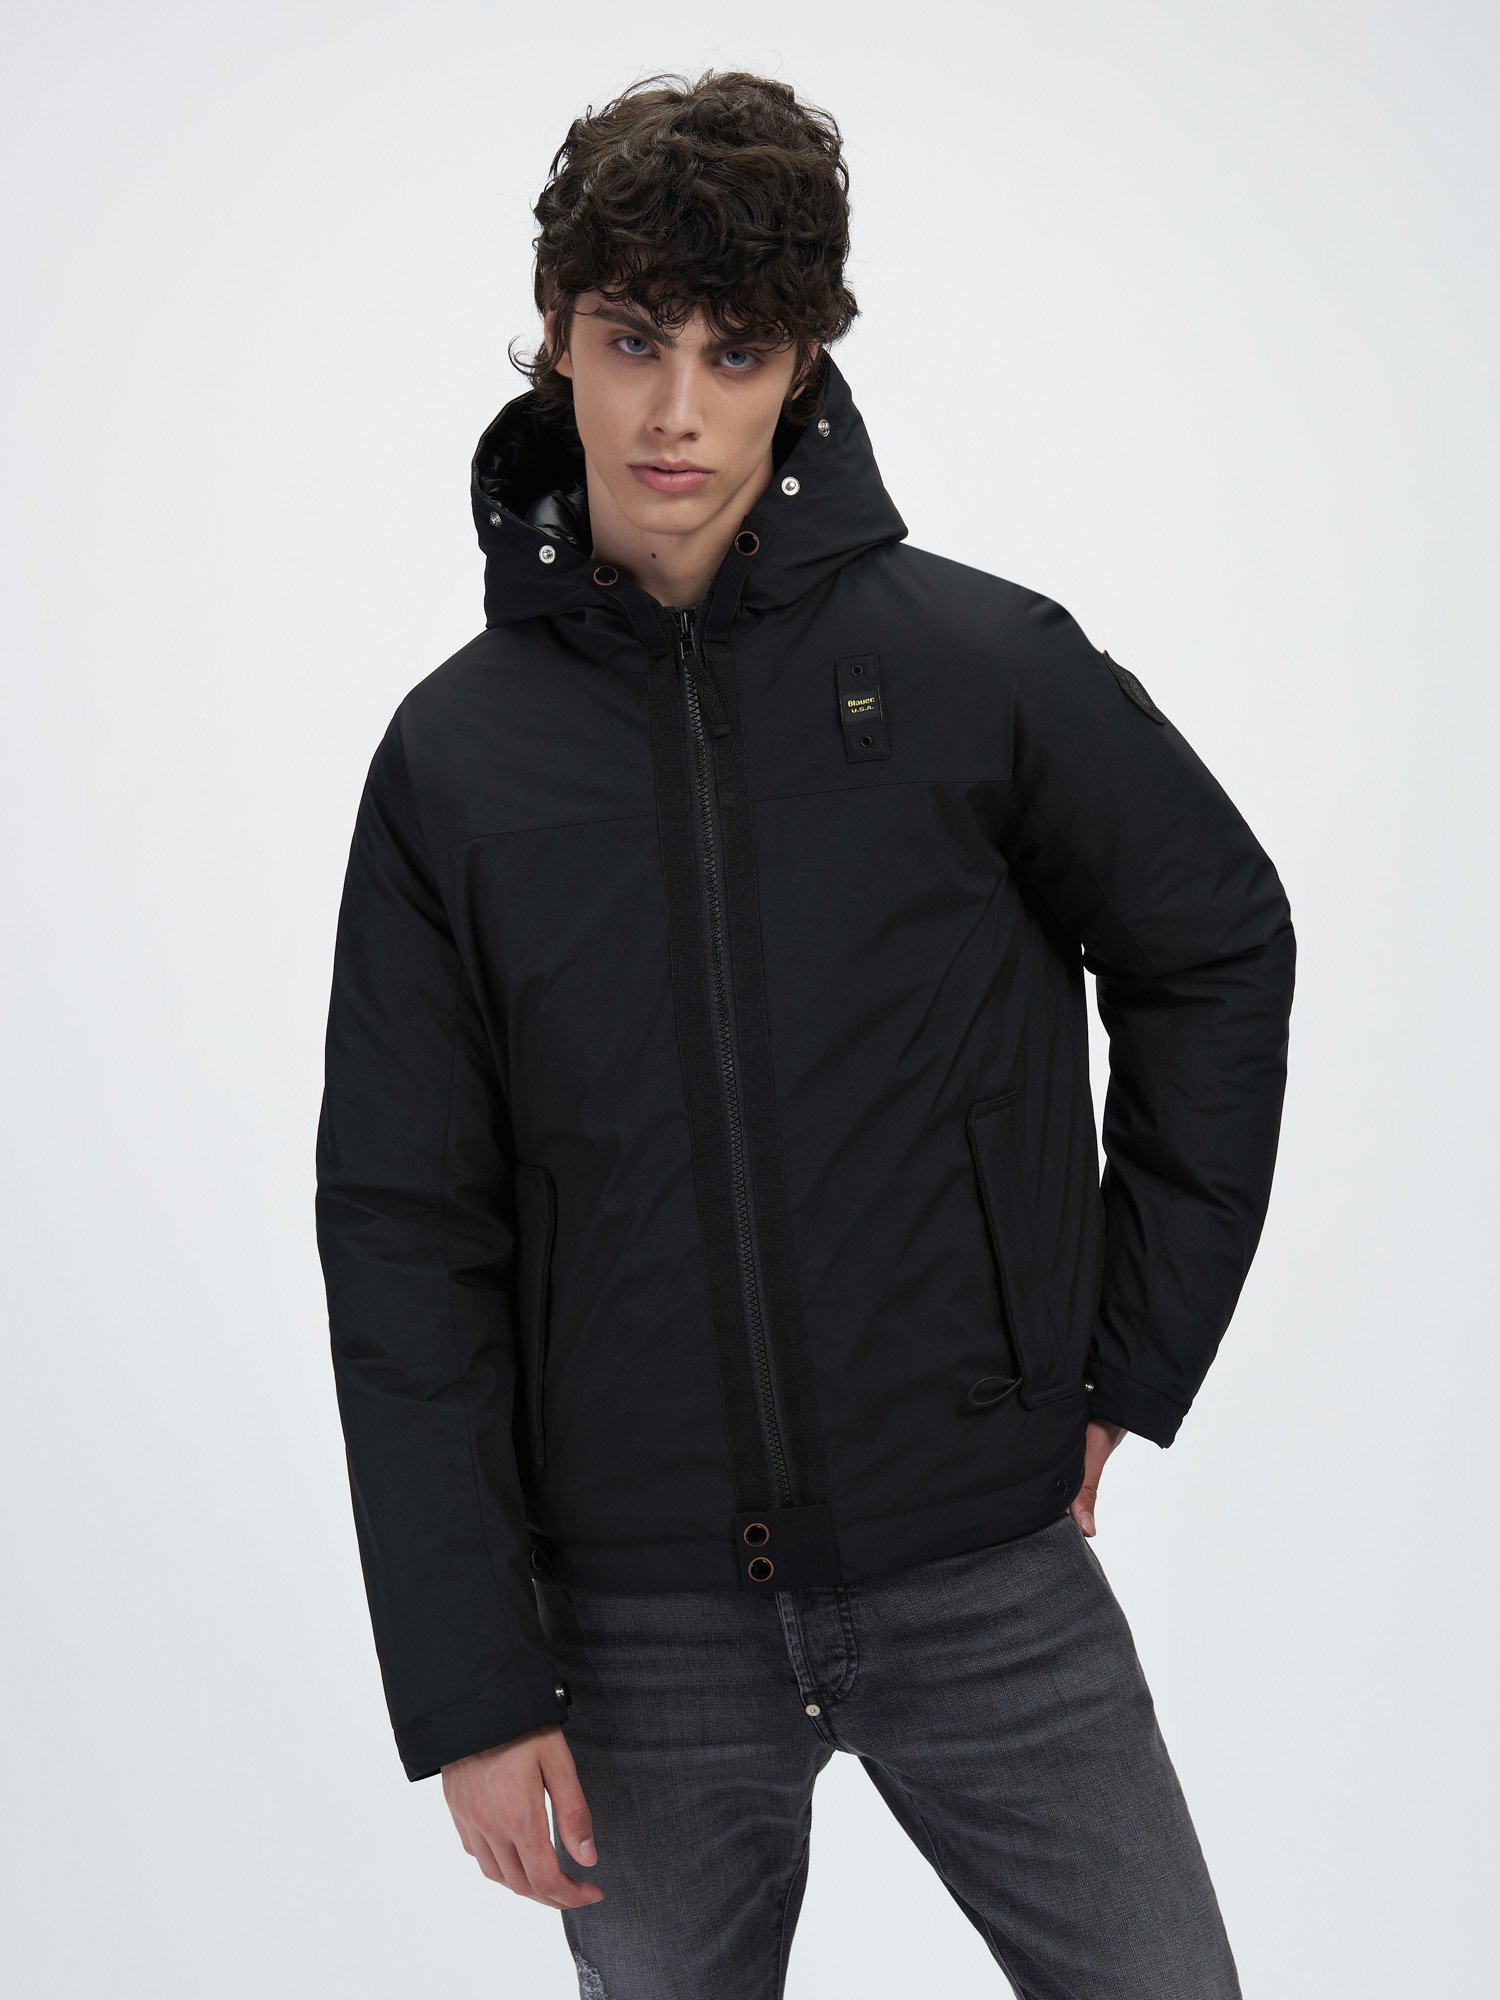 VICTOR DOWN JACKET IN NYLON-LINED NEOPRENE - Blauer